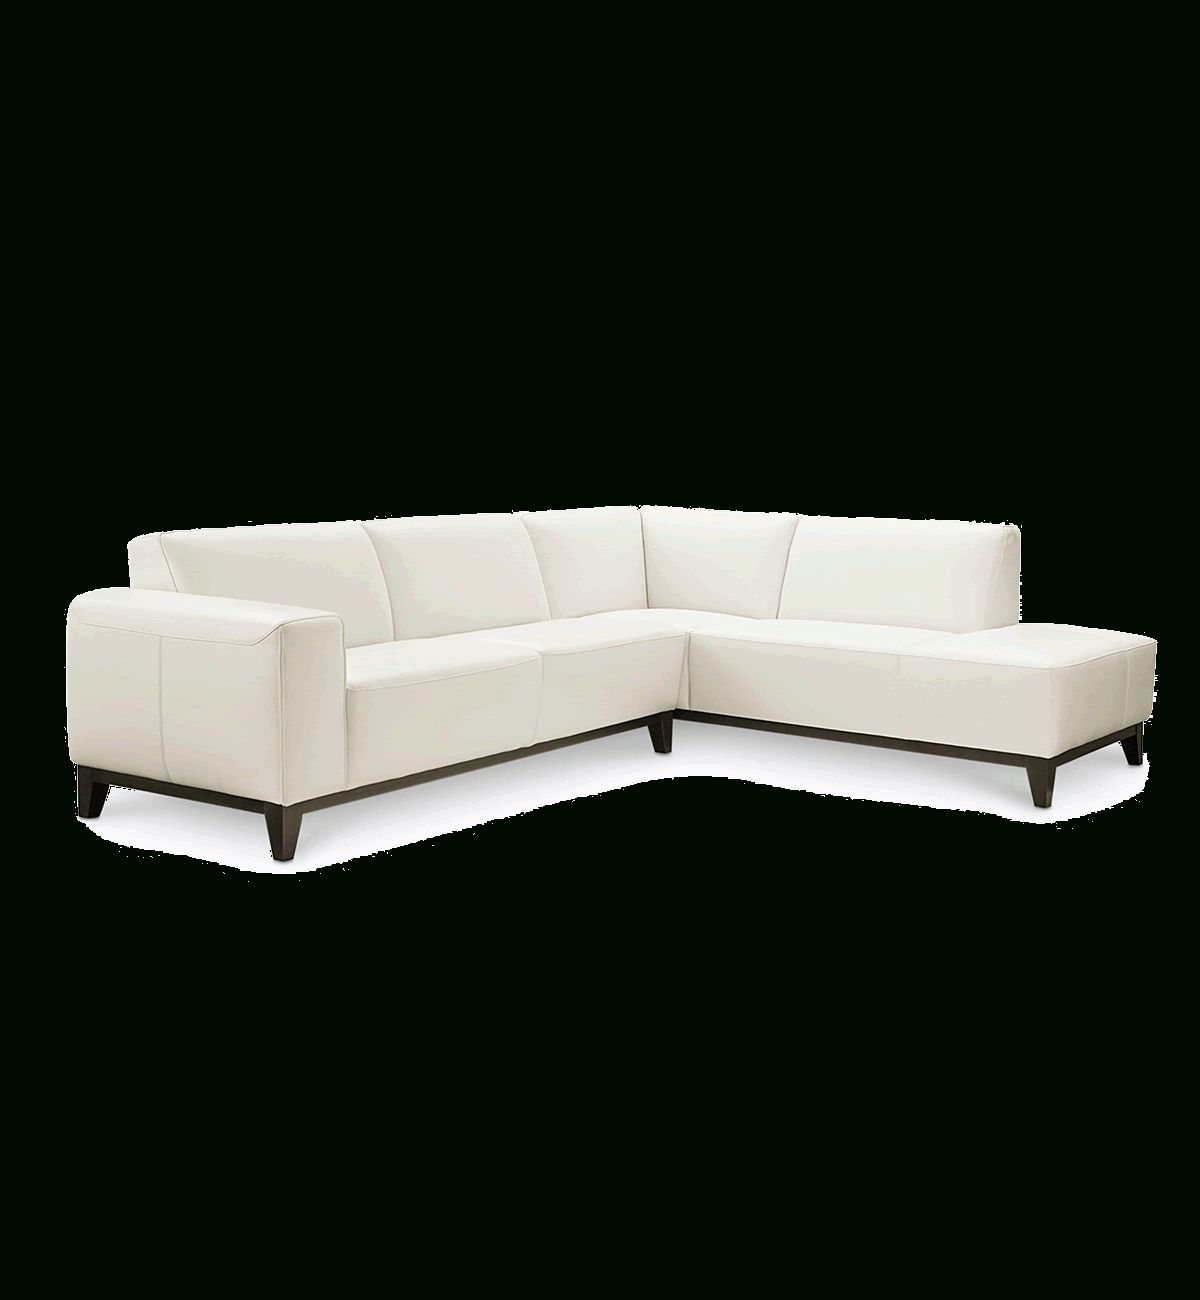 Macys Leather Sofas In Trendy Leather Couches And Sofas – Macy's (View 13 of 15)